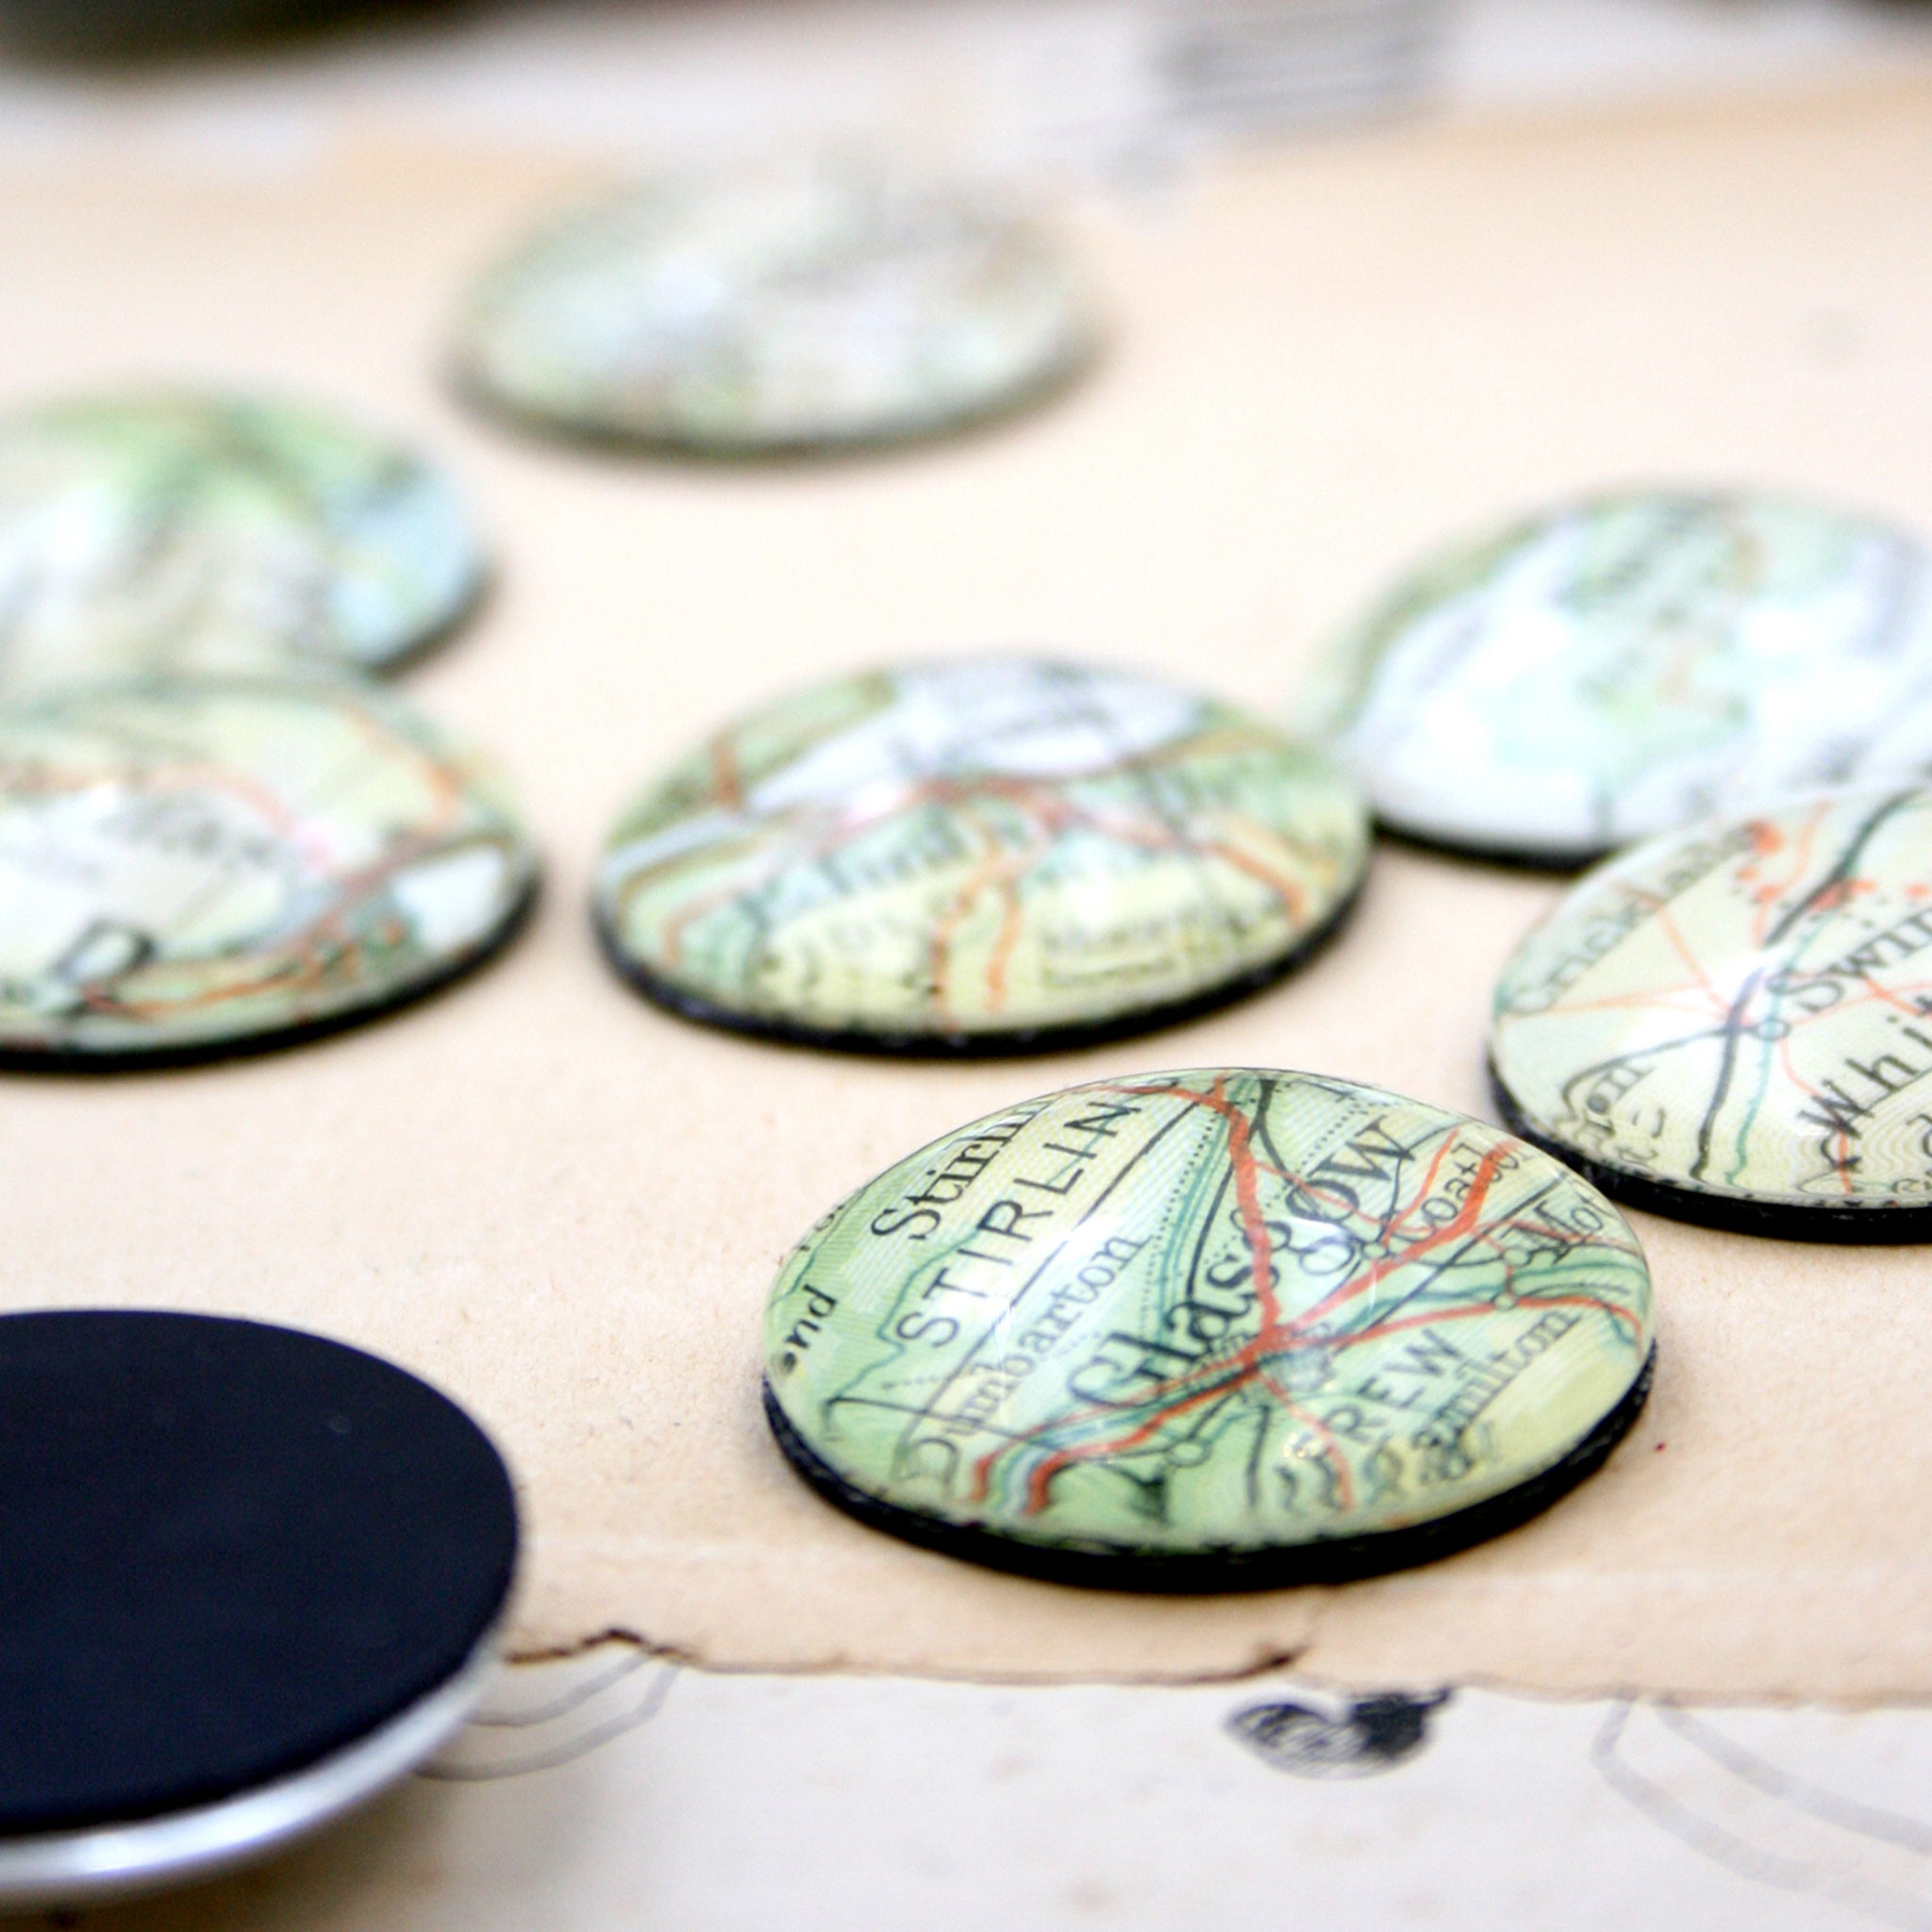 fridge magnet personalised with geographical maps of custom locations